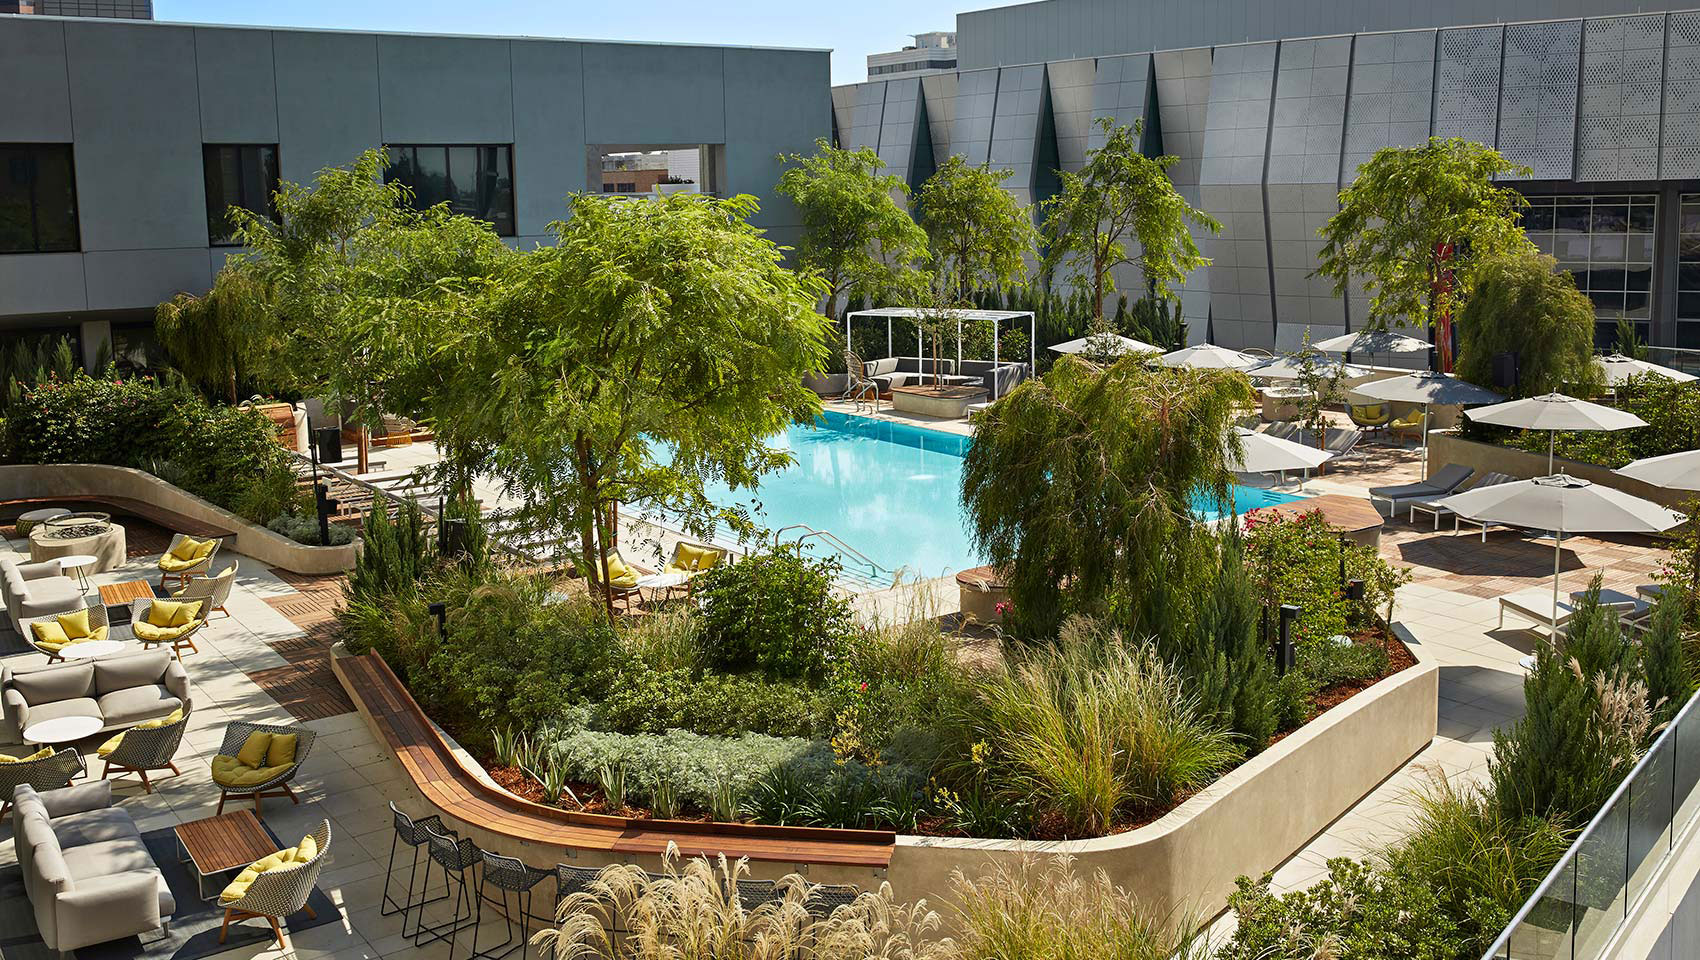 aerial-view-pool-sitting-area-sawyer-hotel-sacramento-kimpton